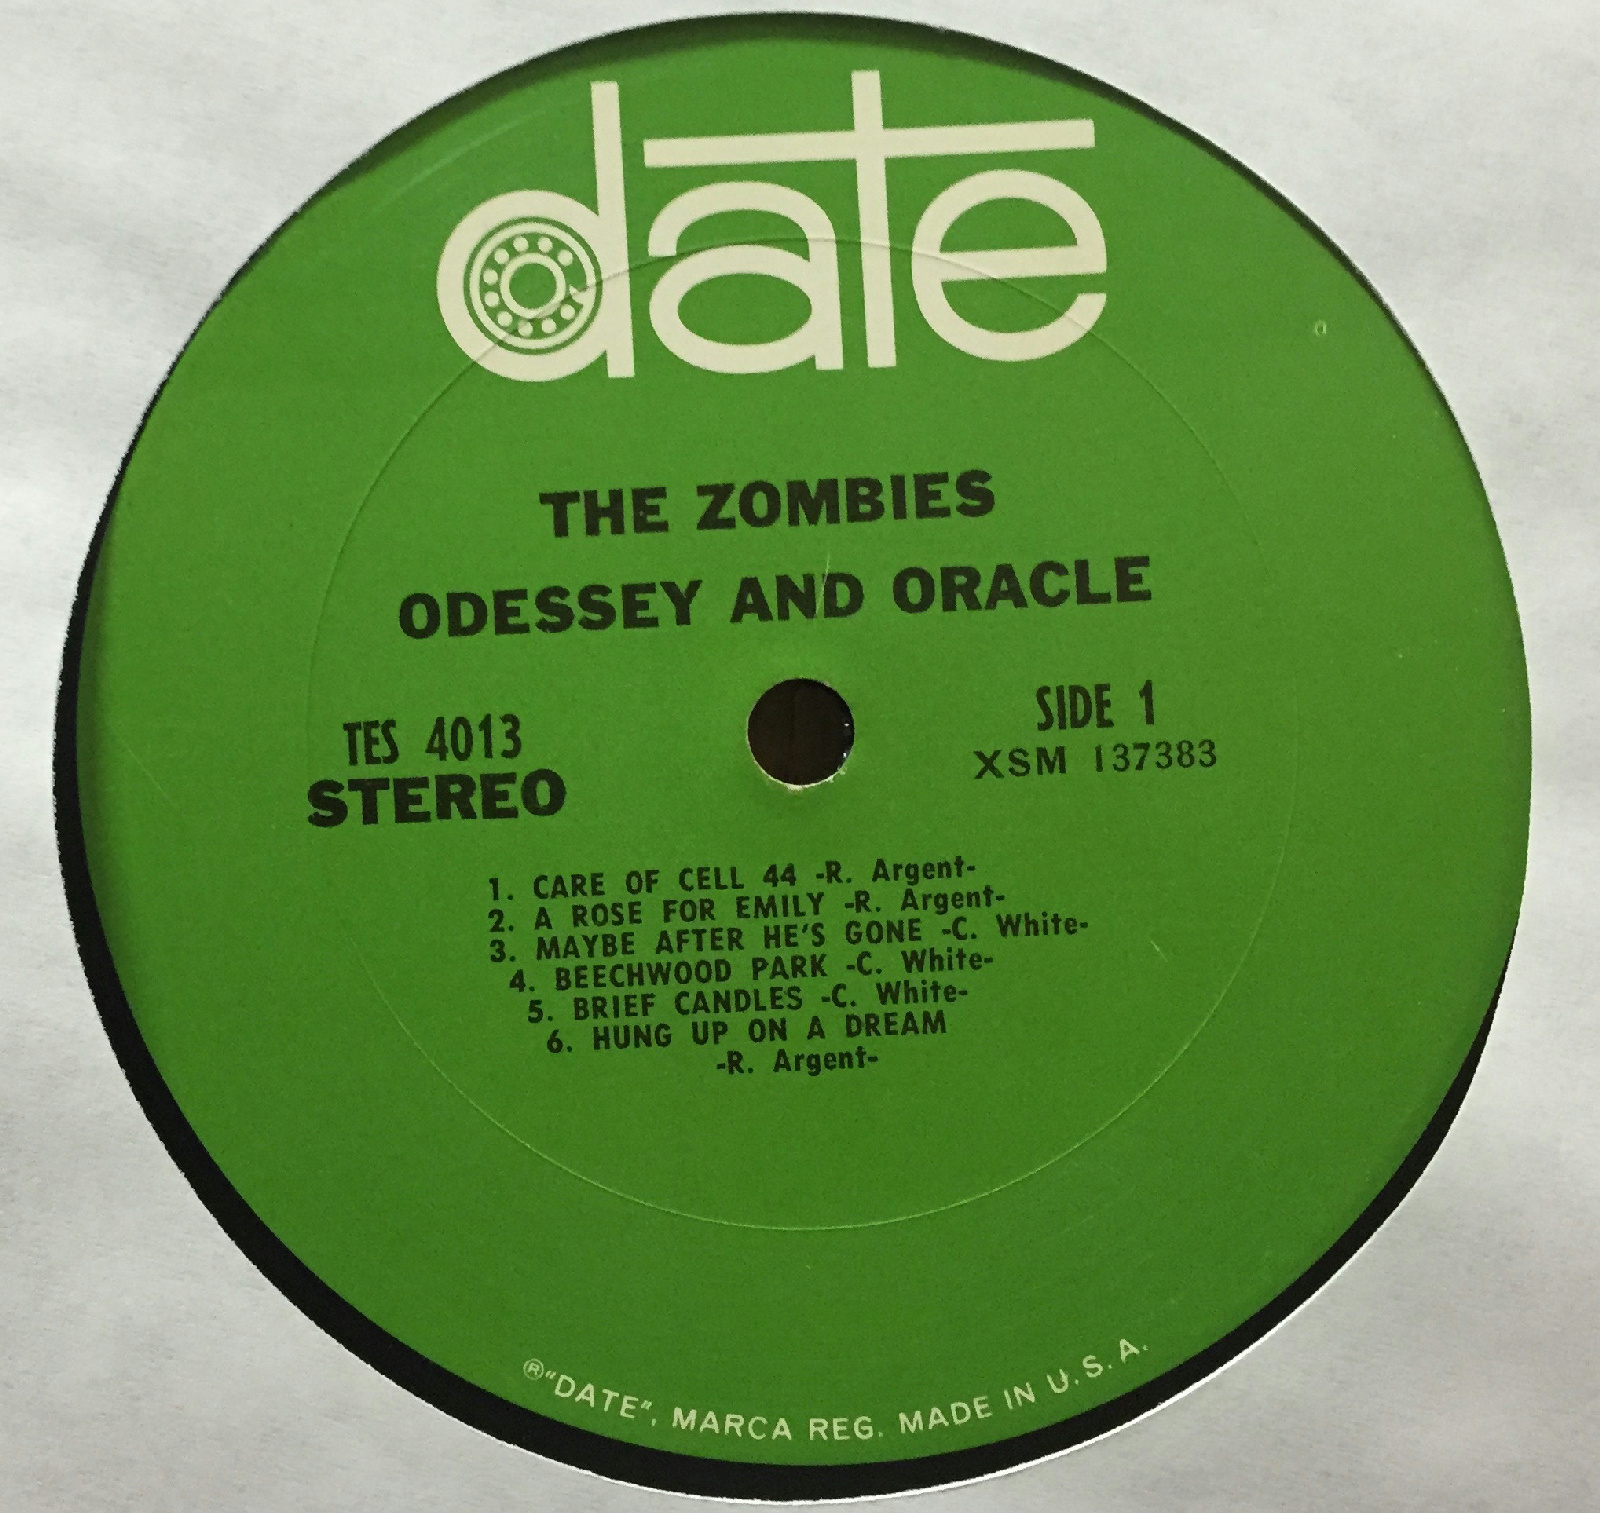 The Zombies Odessey And Oracle Lp Vg 1968 Date Tes 4013